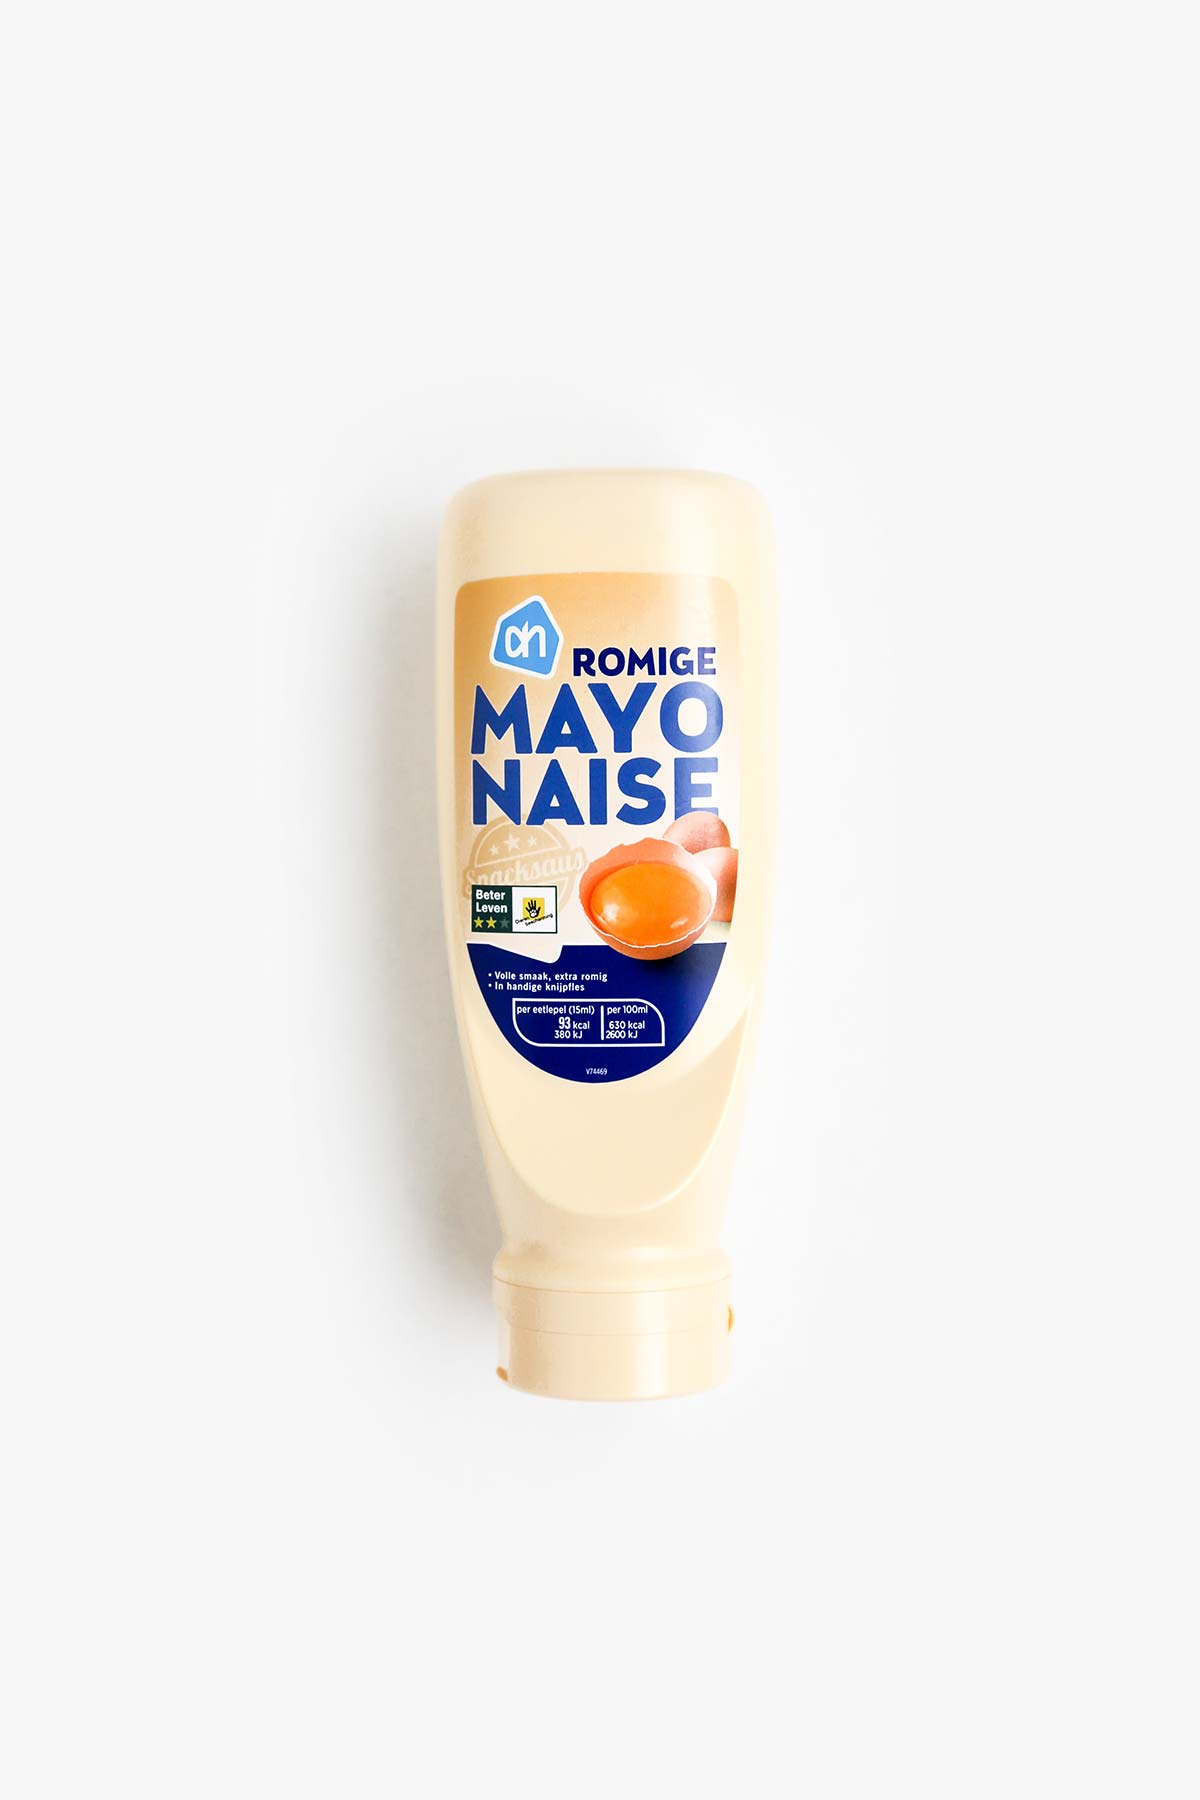 Keto Mayonnaise, a guide to keto foods for low carb. keto, keto ingredients, keto foods, keto dairy, ketogenic diet, ketogenic dairy, keto shopping list, low carb, low carb foods, low carb dairy, lchf, lchf foods, lchf dairy